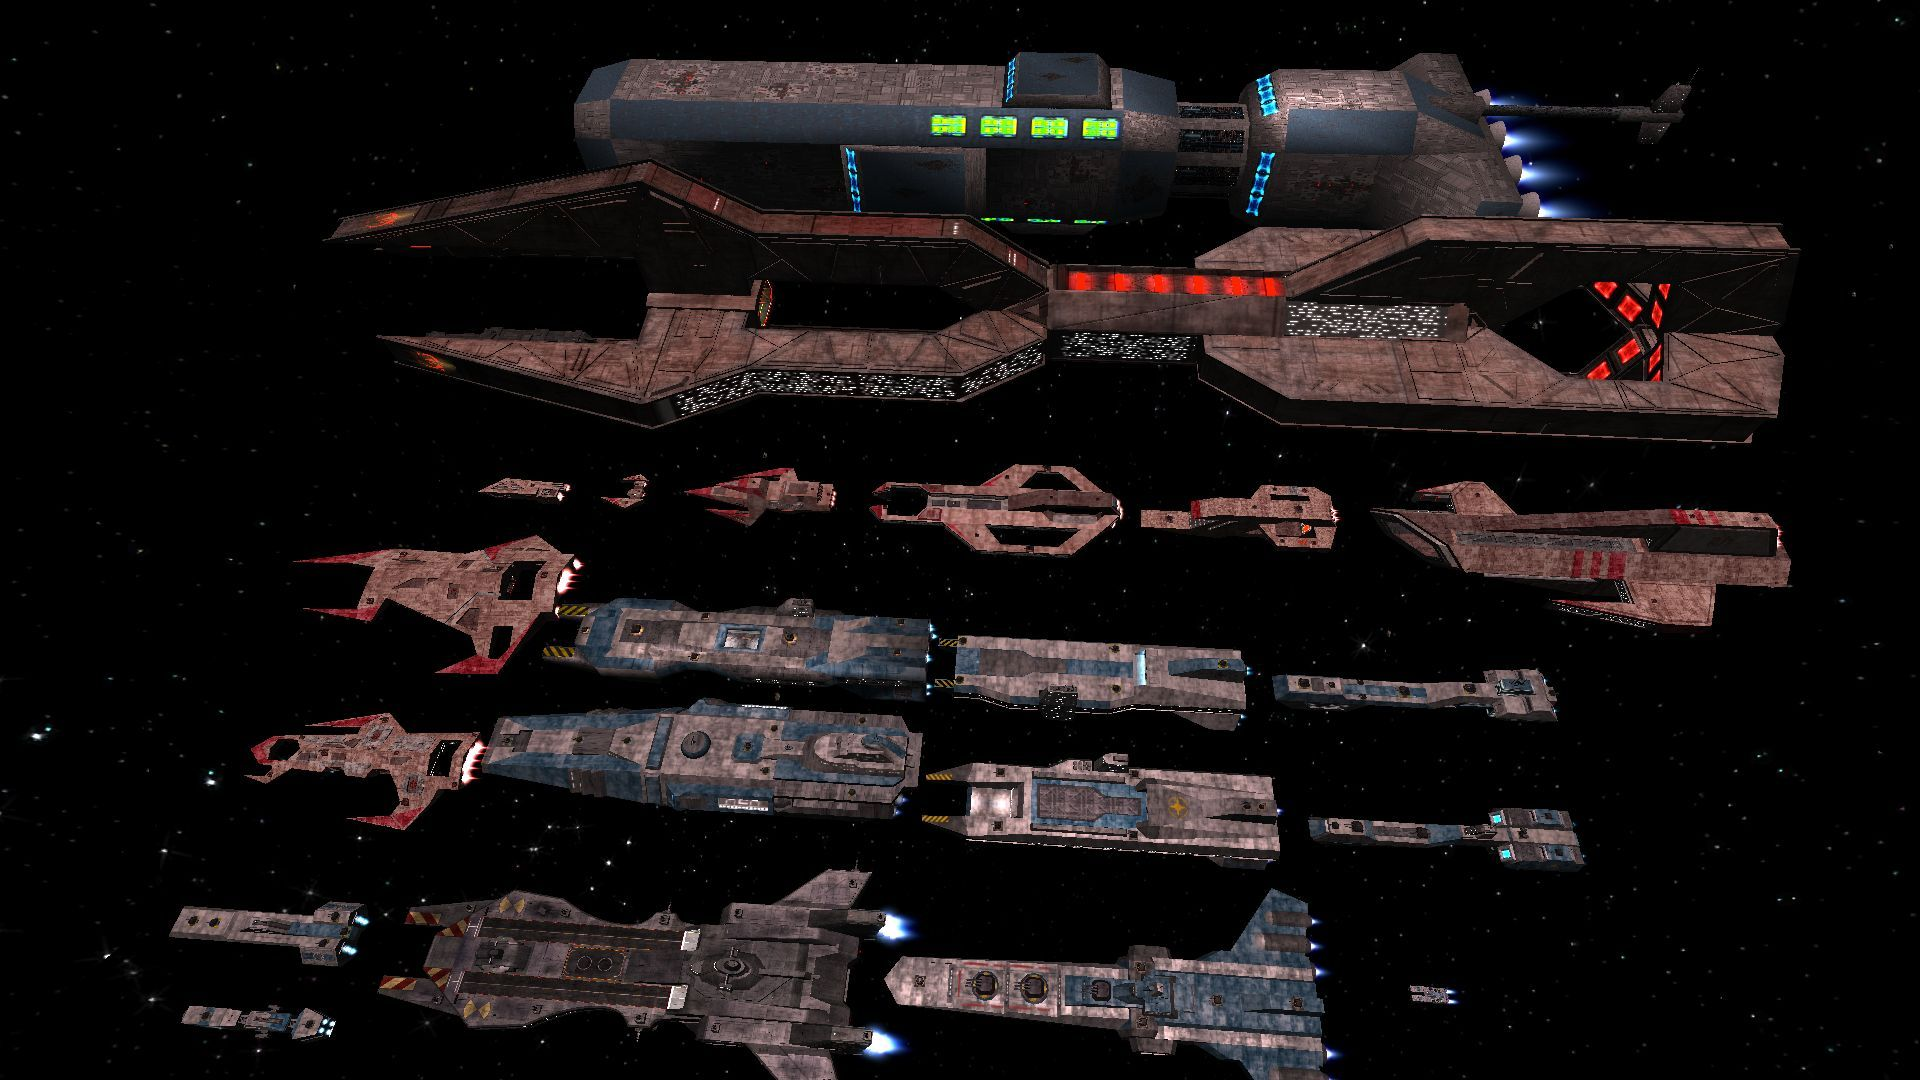 Wing commander prophecy ships google search wing for Wing commander